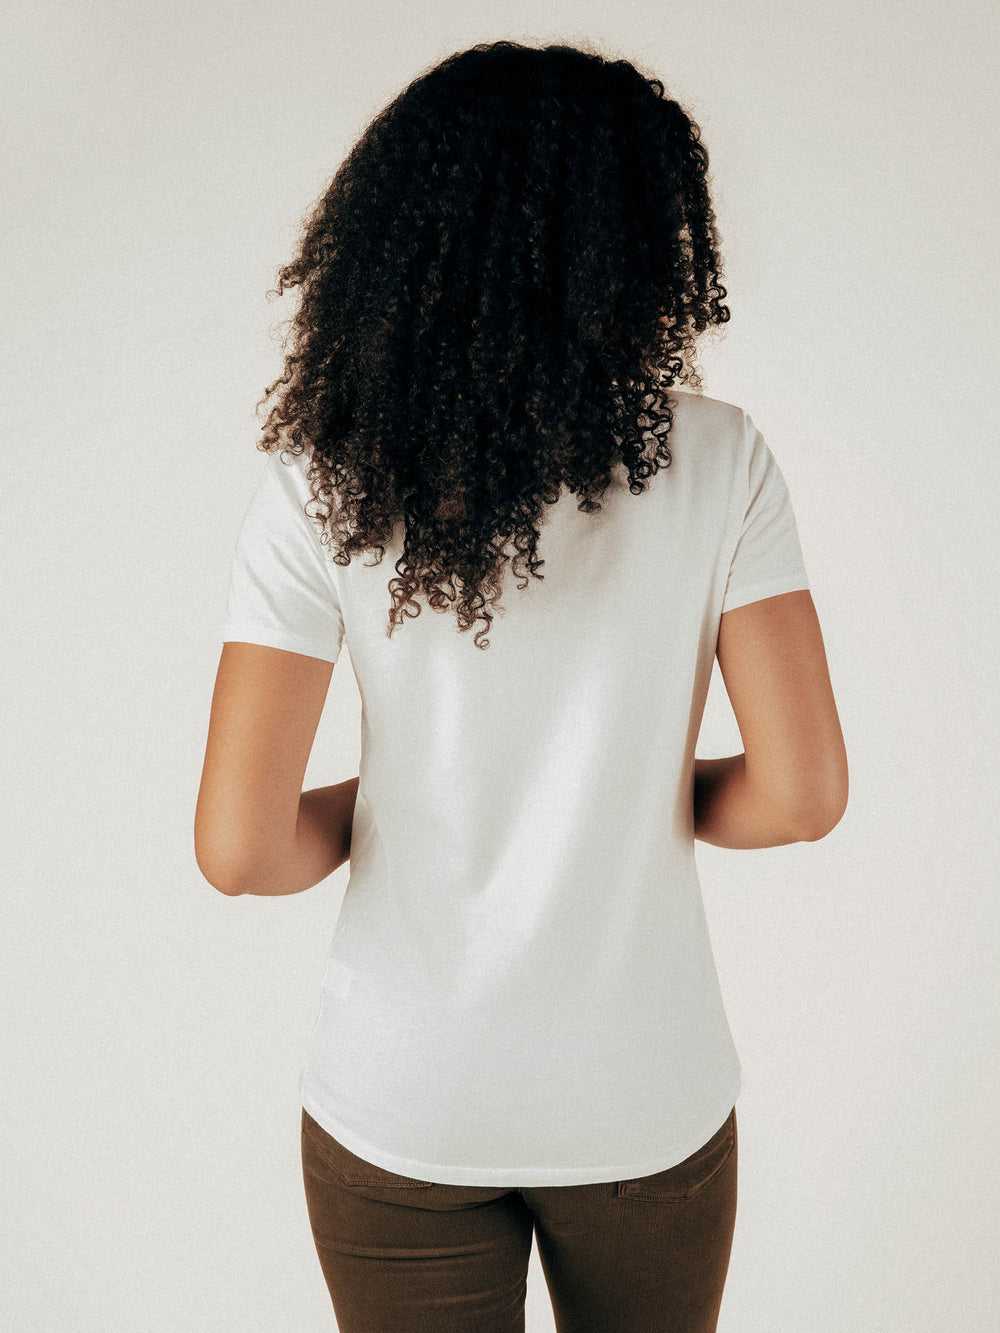 Creamy White Scoop Neck Curved Hem Tee - Graceful District